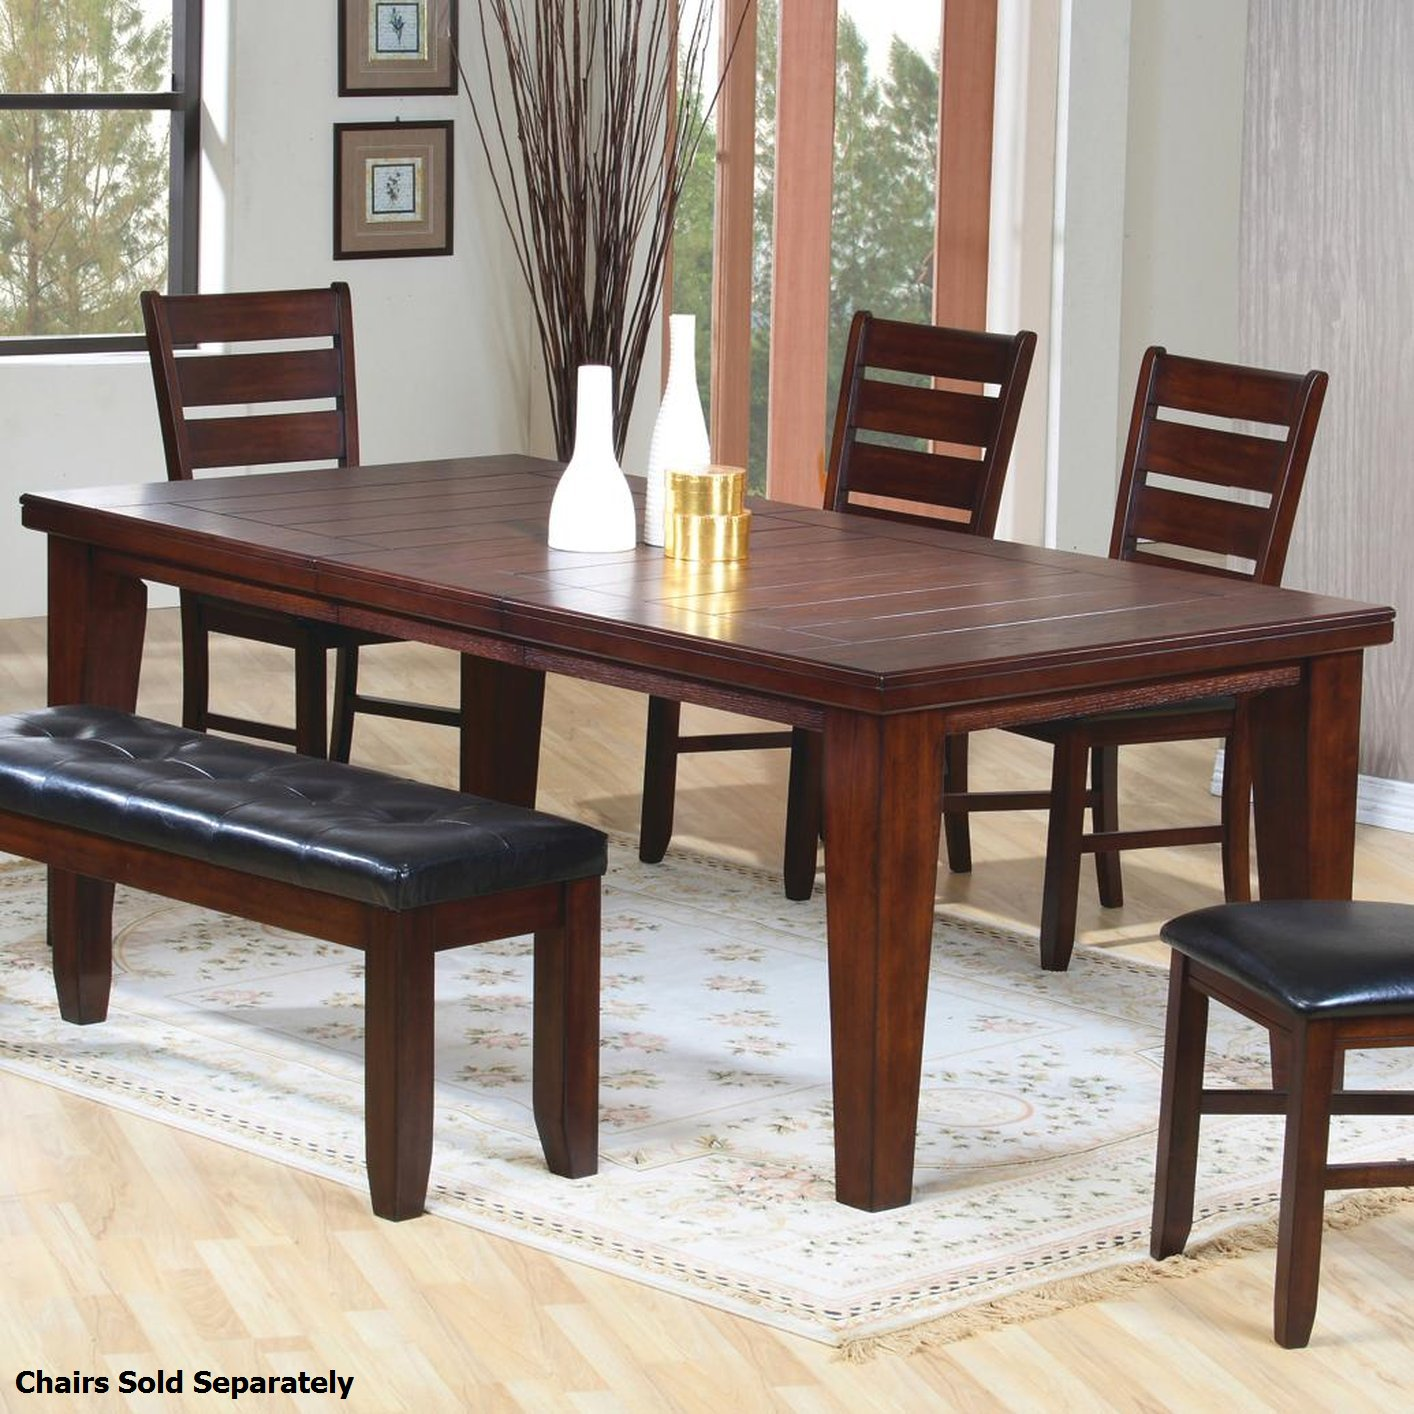 brown wood dining table - Rustic Furniture Outlet